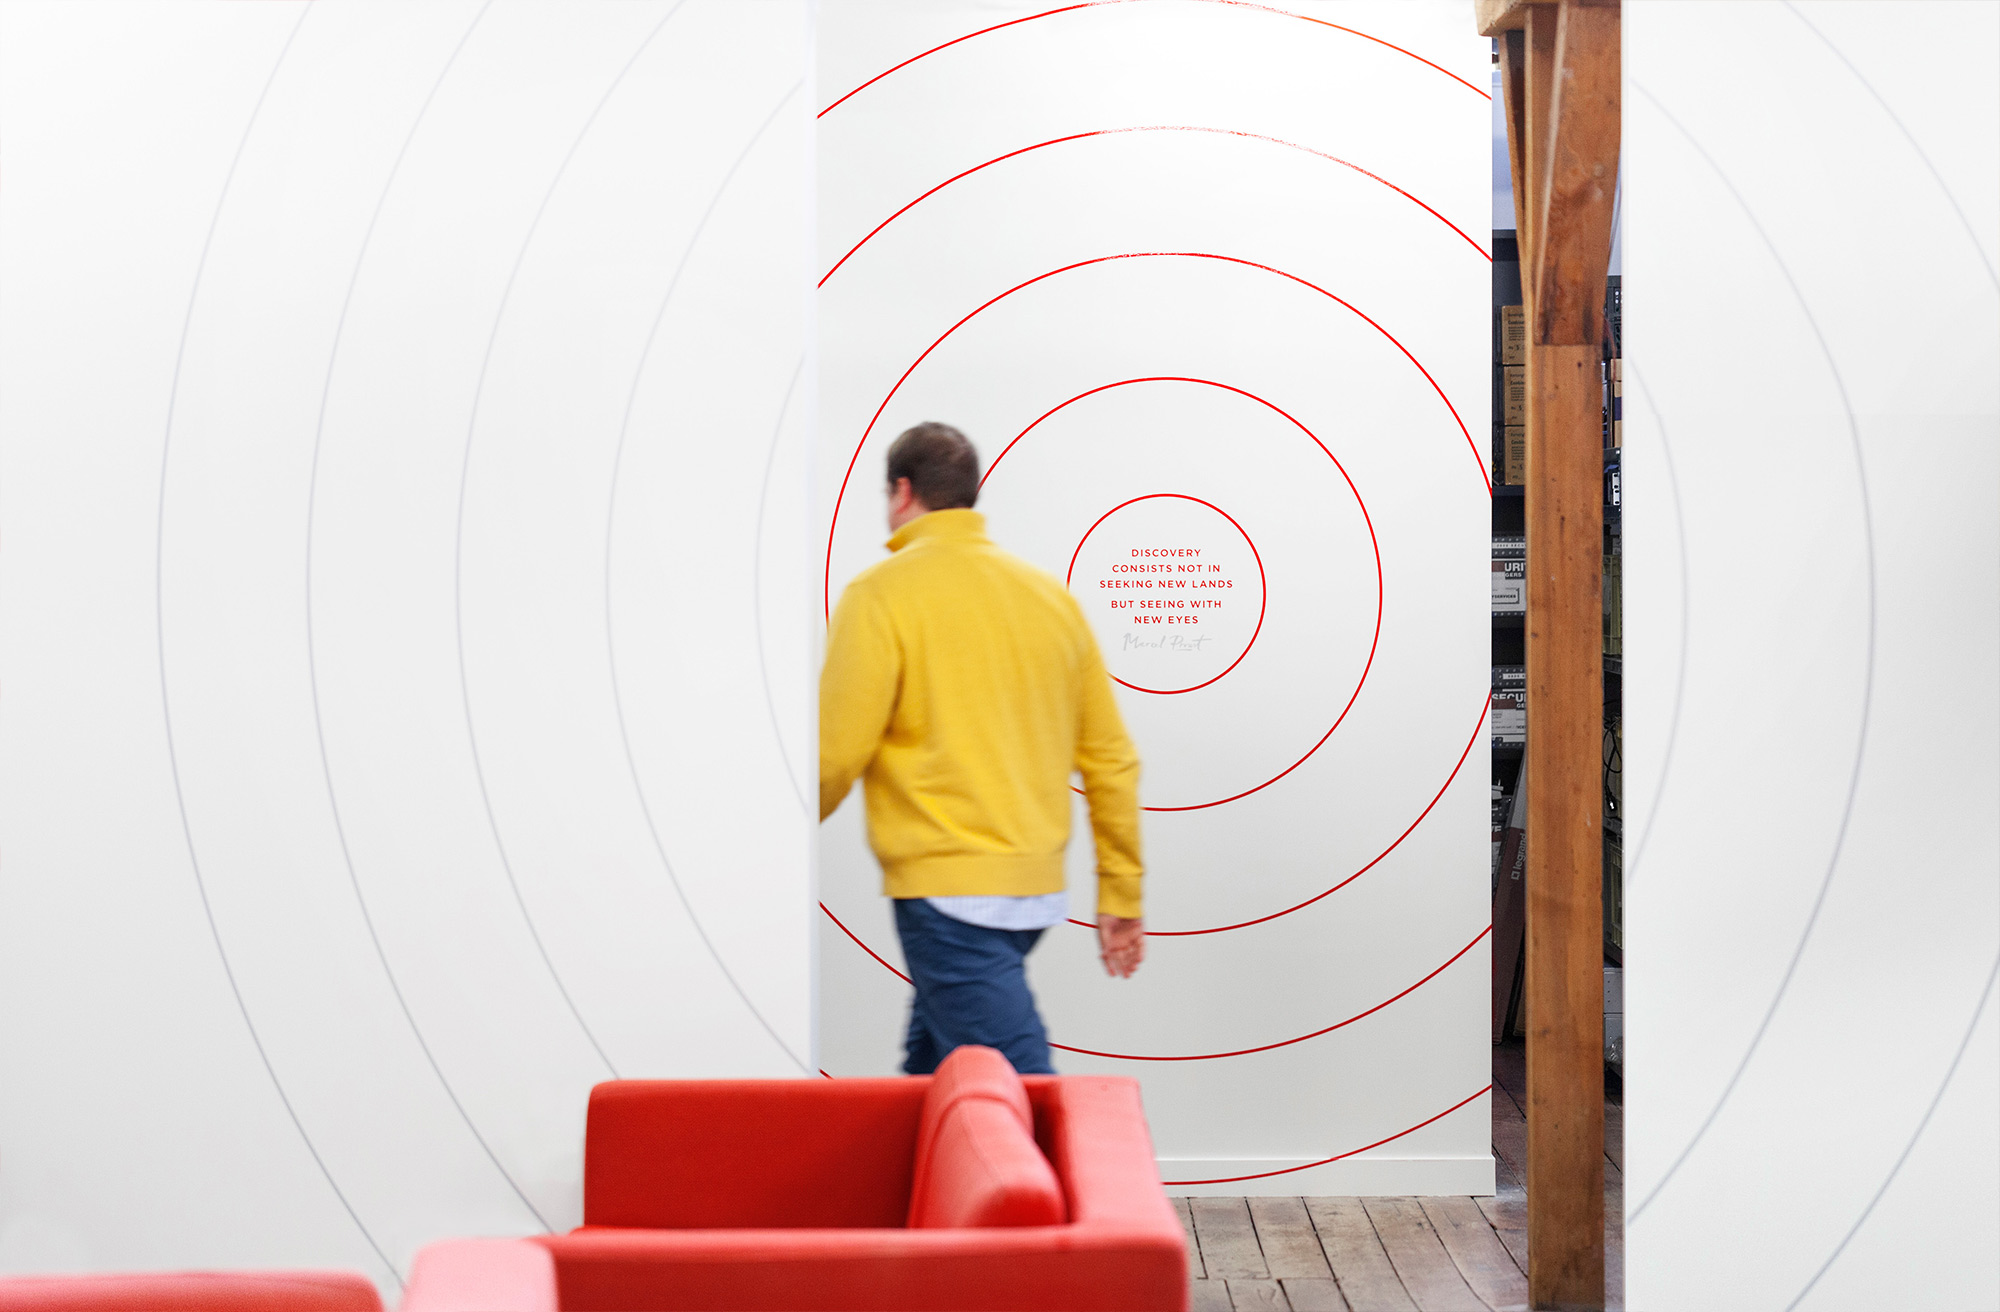 Motivational quotes on experiential graphics for Ogilvy & Mather New Zealand HQ. @enviromeant.com